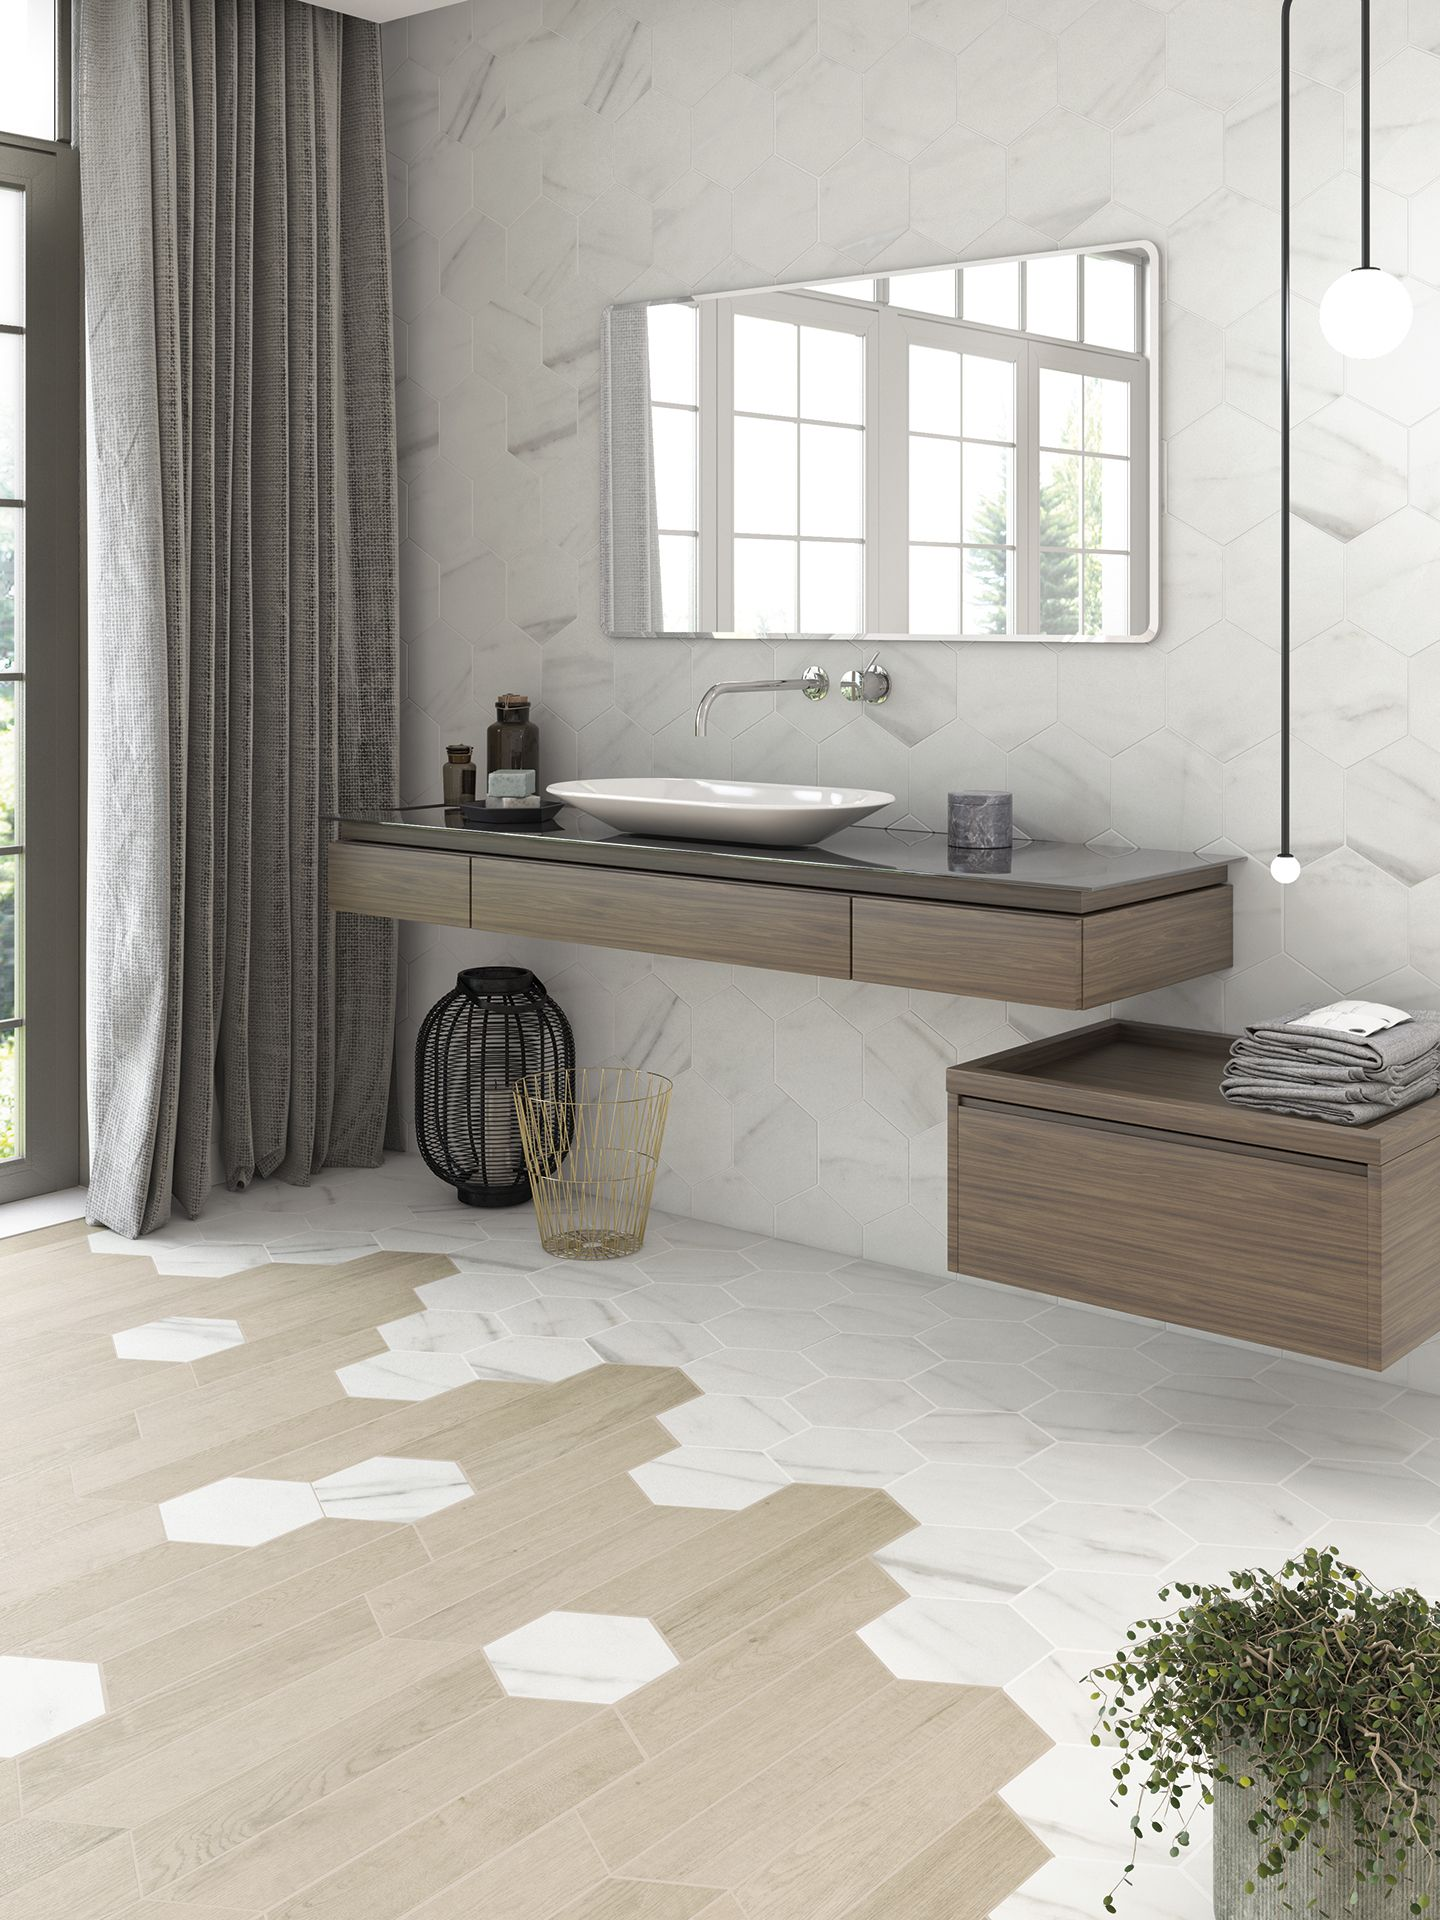 Tips to Create Salle De Bain Carrelage Parquet